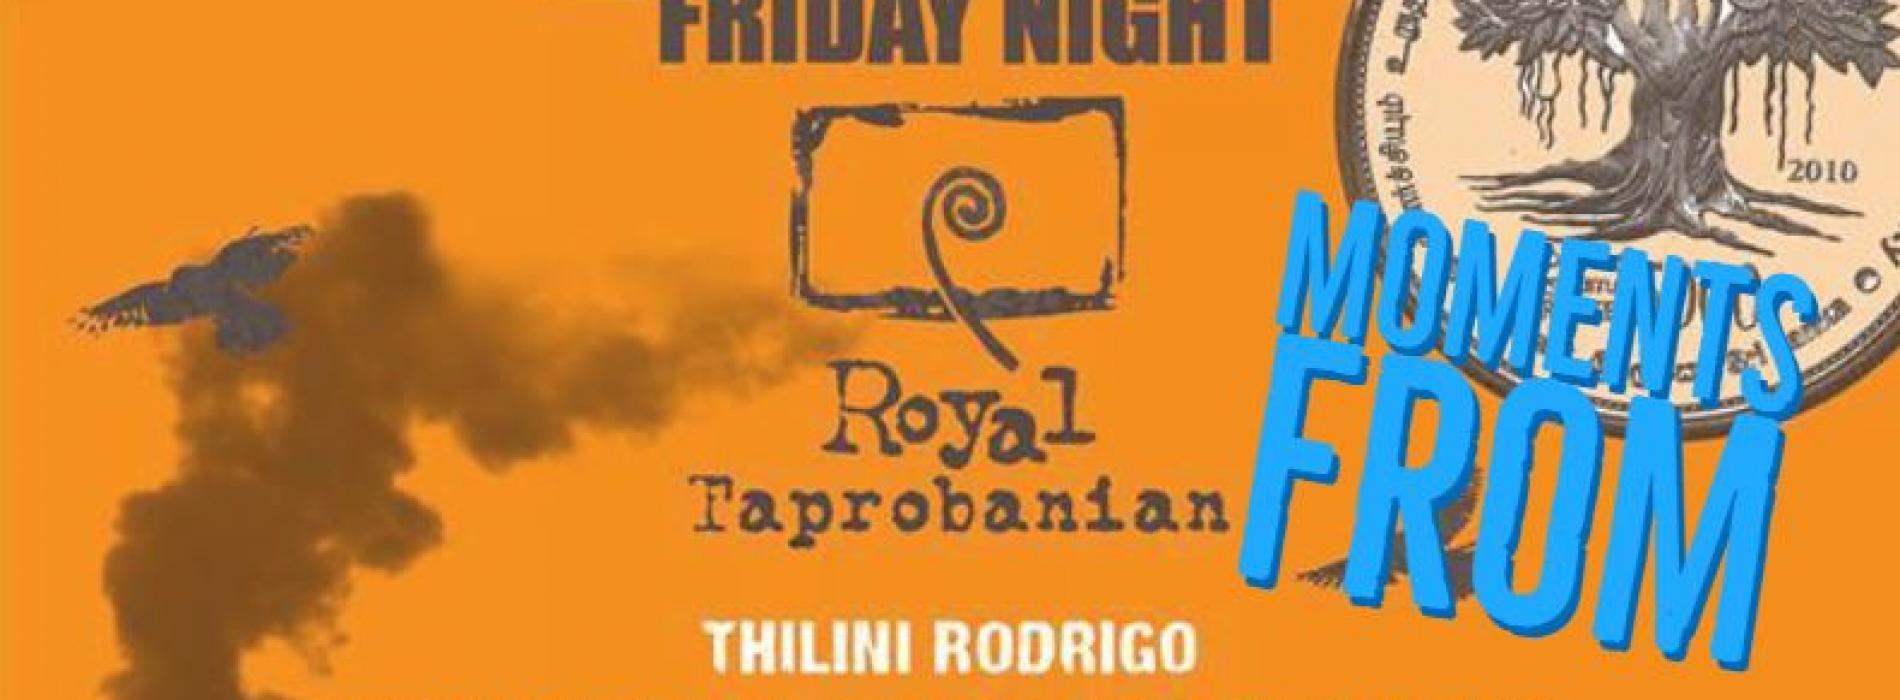 Moments From Friday Night @ The Royal Taprobane